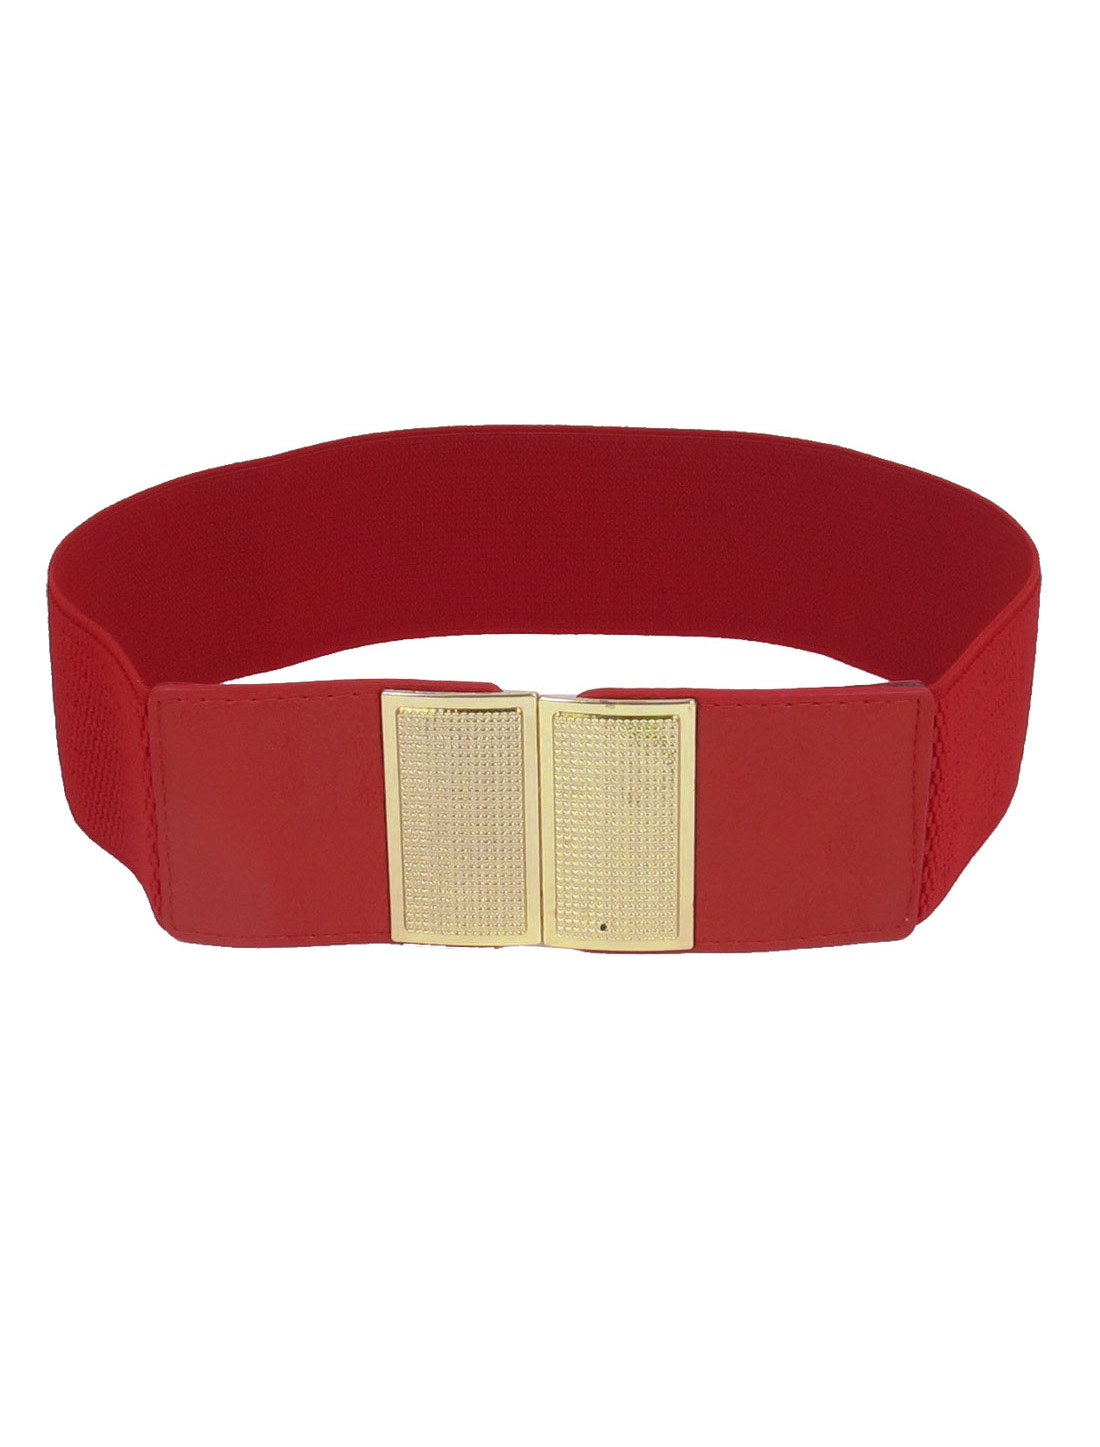 Lady Rectangle Metal Interlocking Buckle Stretchy Faux Leather Waist Belt Band Waistband Red